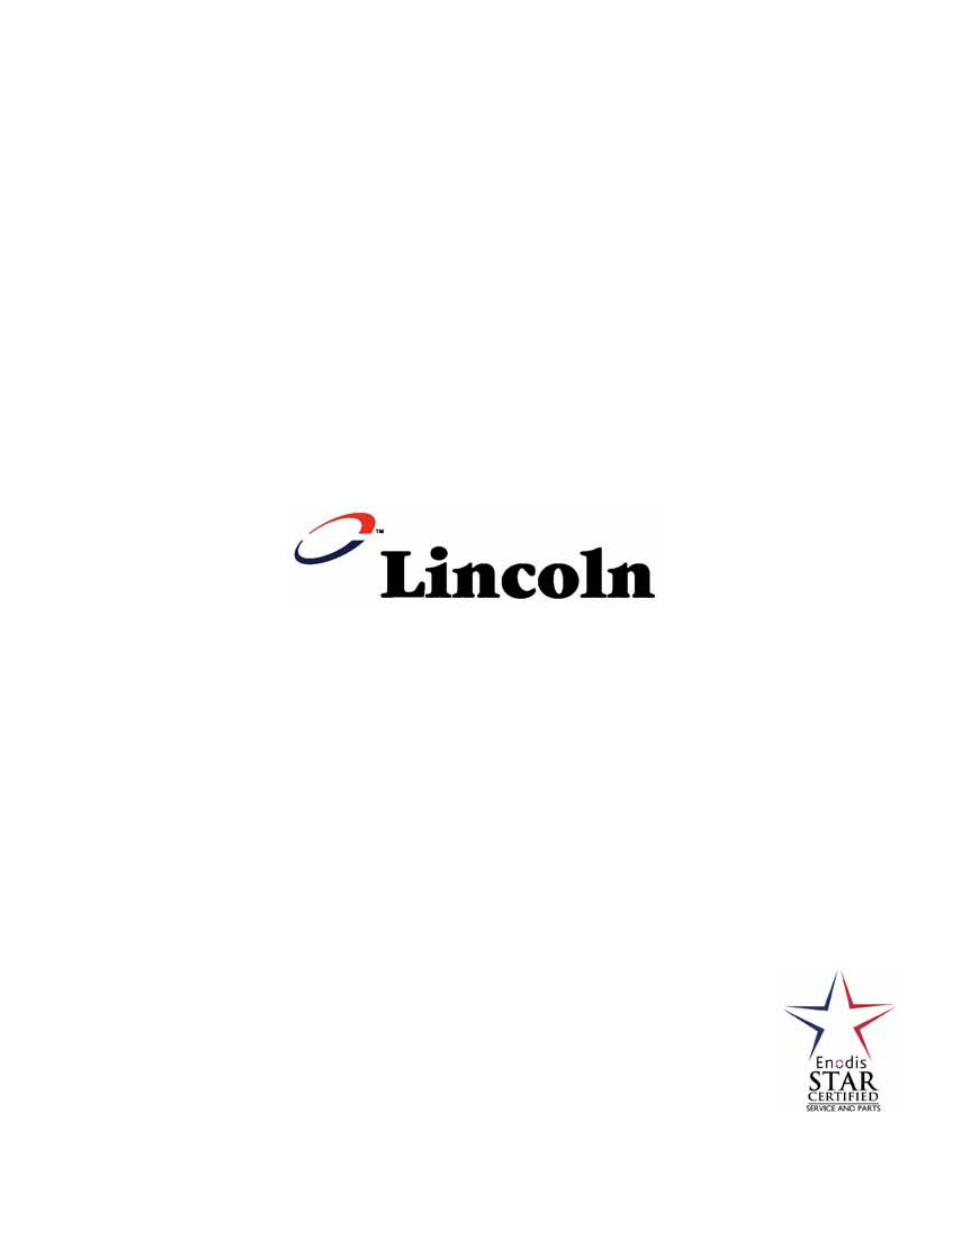 lincoln impinger conveyor ovens service manual one word 2000 lincoln ls diagrams lincoln impinger conveyor ovens 1633 000 ea user manual 28 pages rh manualsdir com lincoln impinger 1132 oven manual lincoln impinger 1301 oven parts